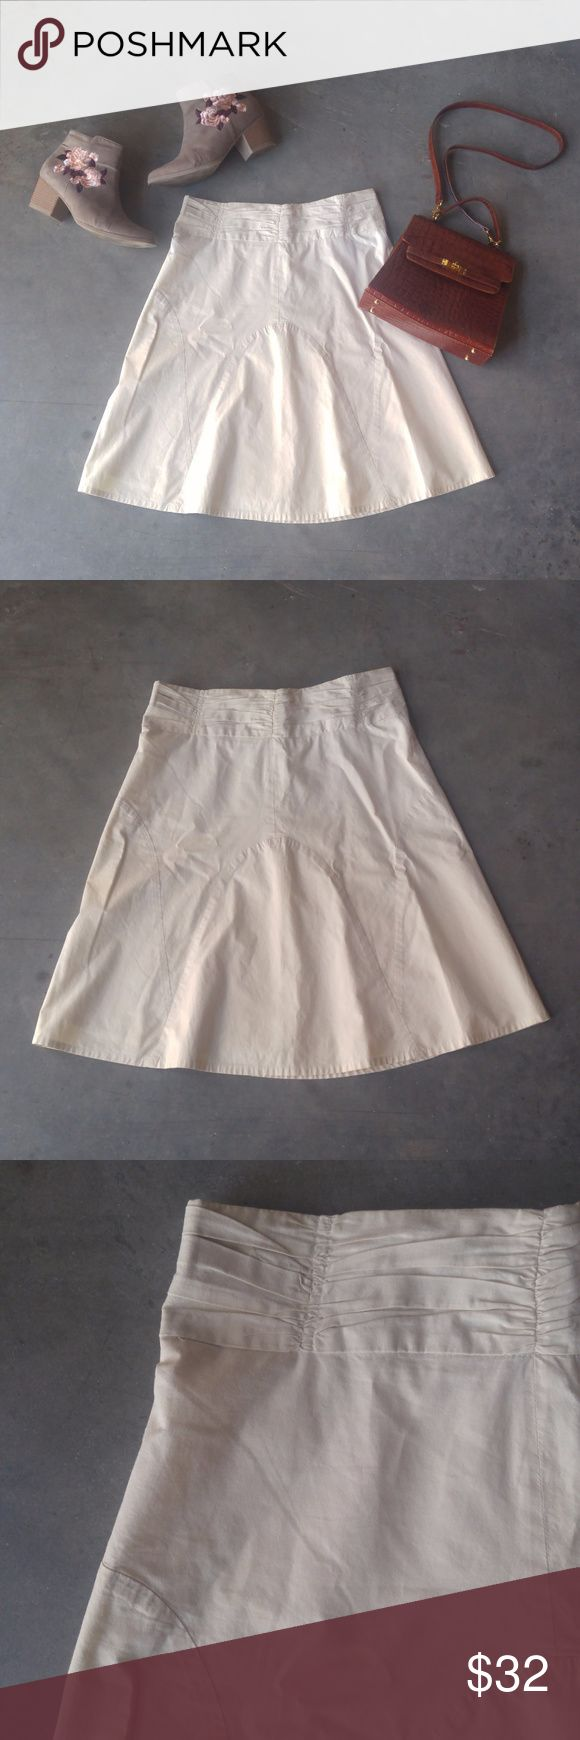 Odille Ivory A-Line Midi Skirt Odille brand skirt from Anthropologie, size 4 (small), in excellent condition! Full, a-line skirt with subtle round stitching. Khaki-like in an ivory/cream color. Side zip. No trades. No modeling. Make a reasonable offer. Thanks! *Cover photo accessories not included* Anthropologie Skirts Midi